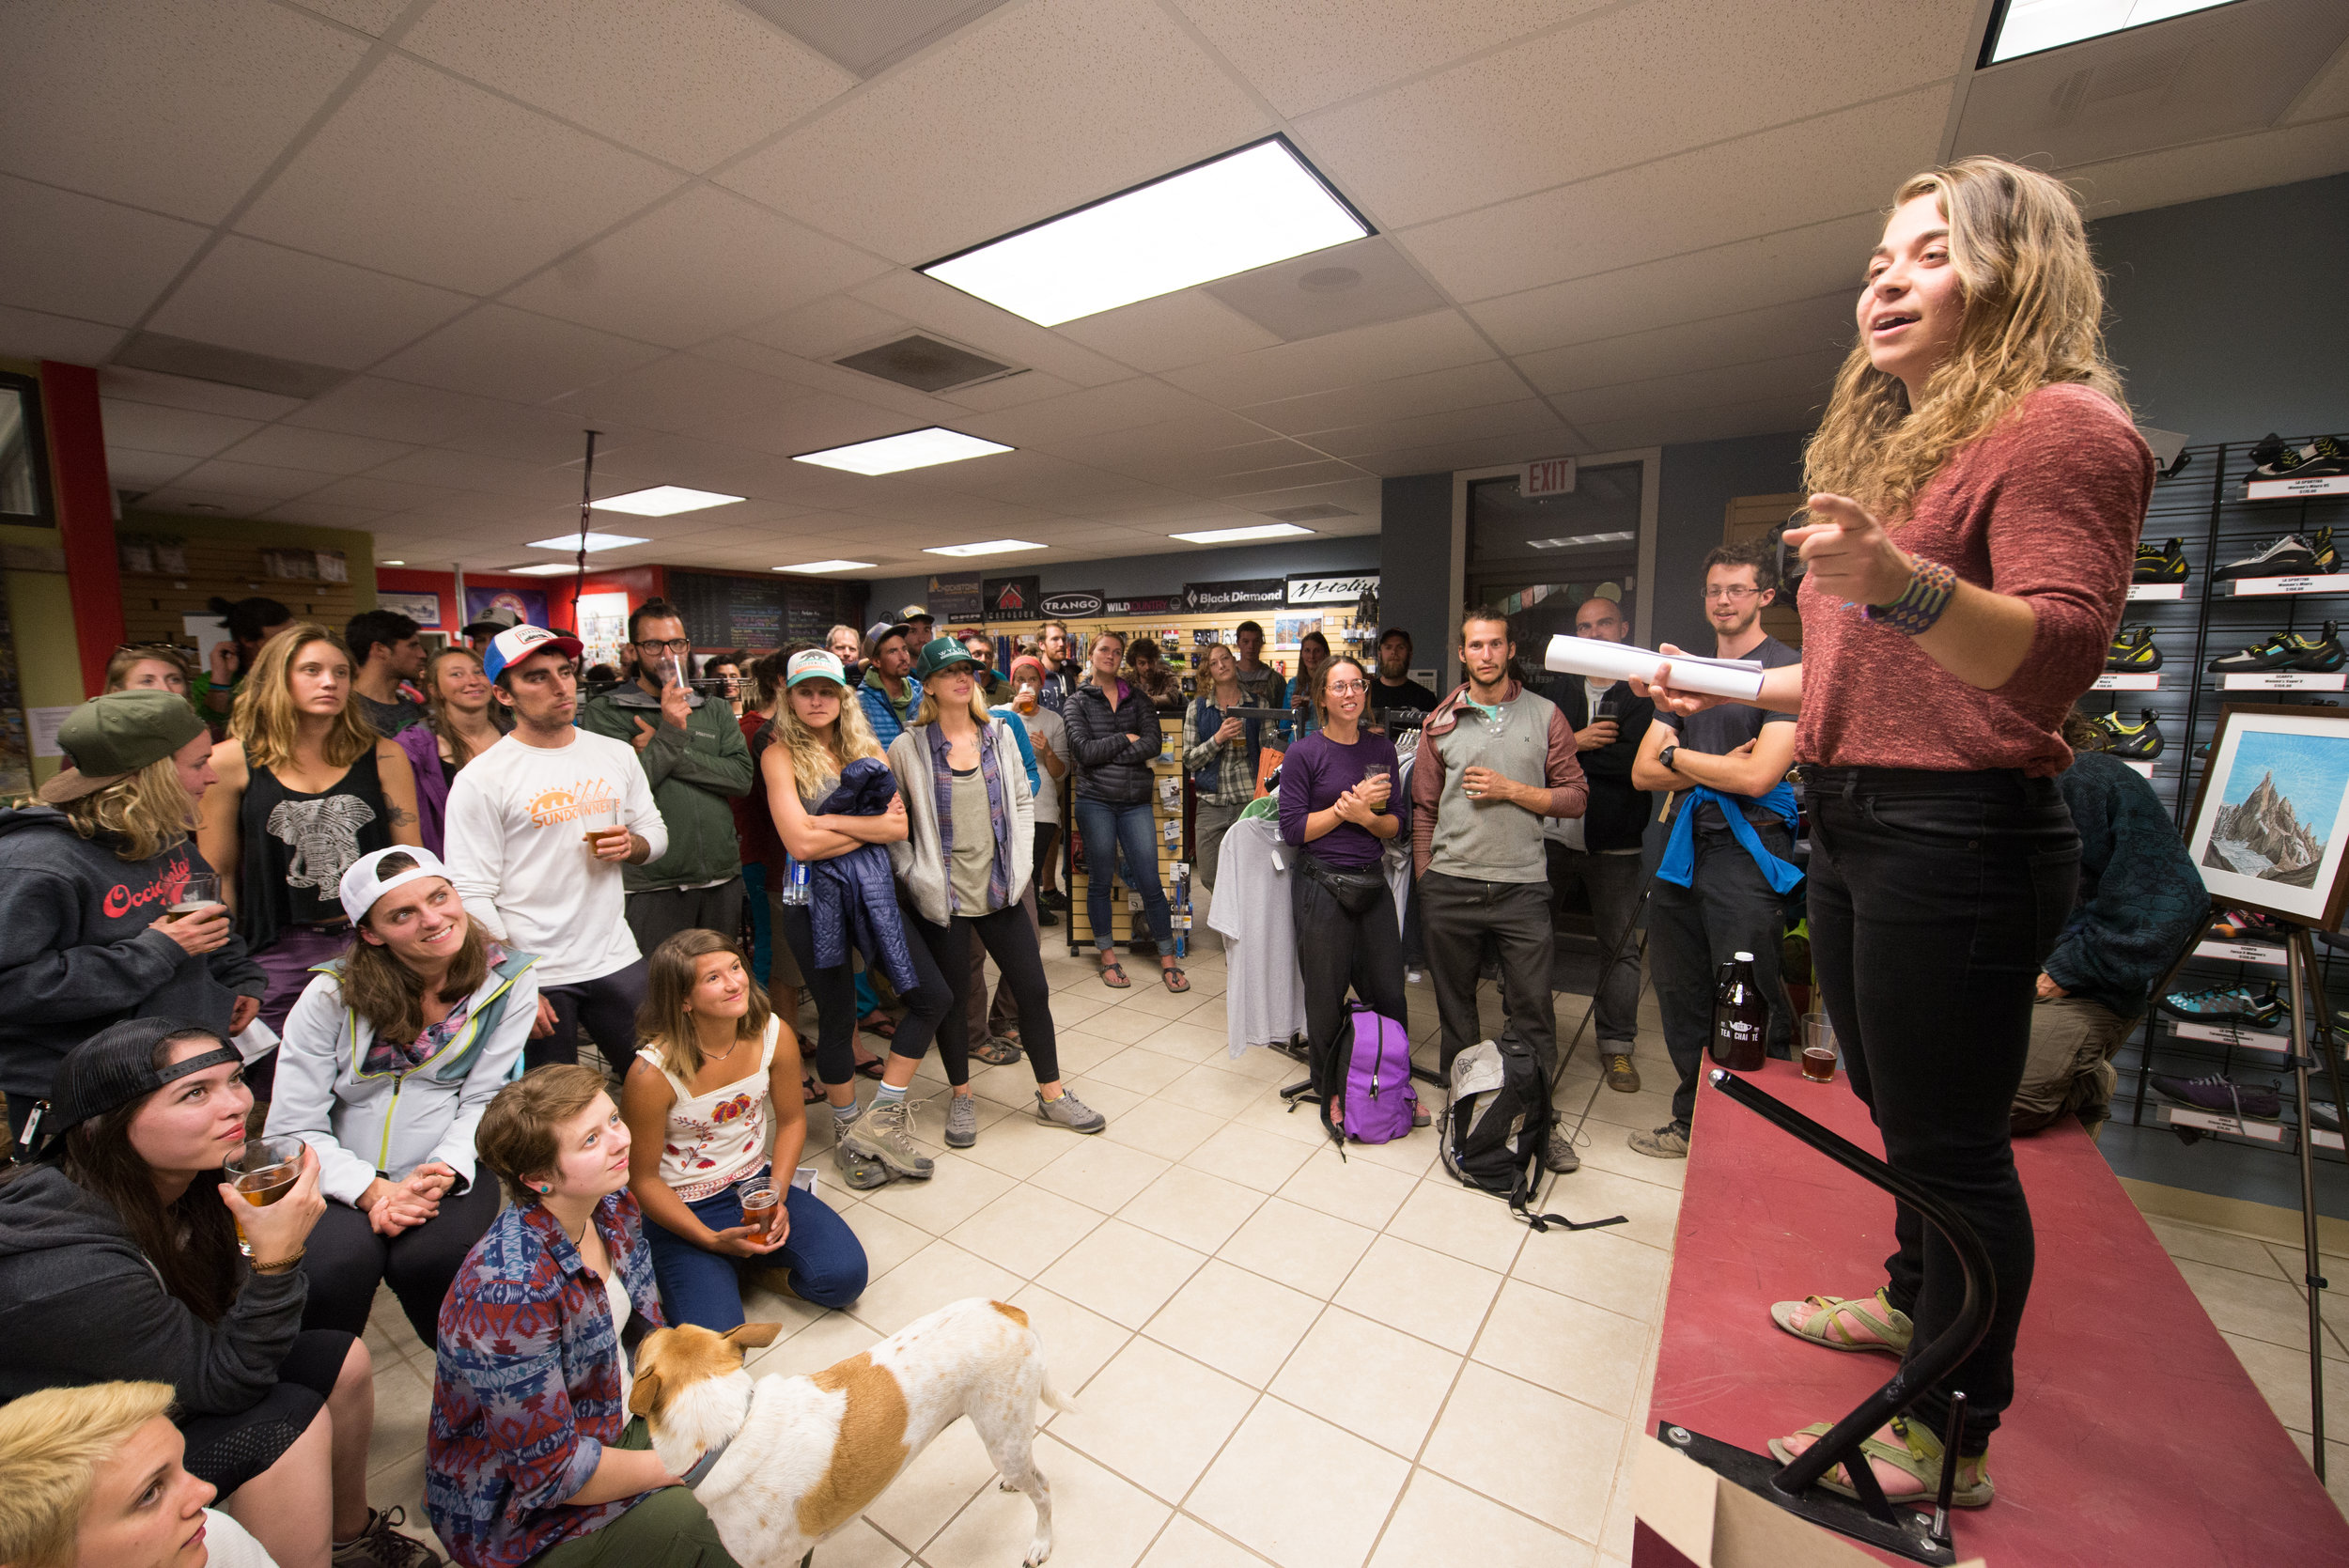 Erin Monahan speaks with a crowd at Redpoint, a climbing gear shop in Terrebonne, Oregon. Photo courtesy: Caleb Wallace